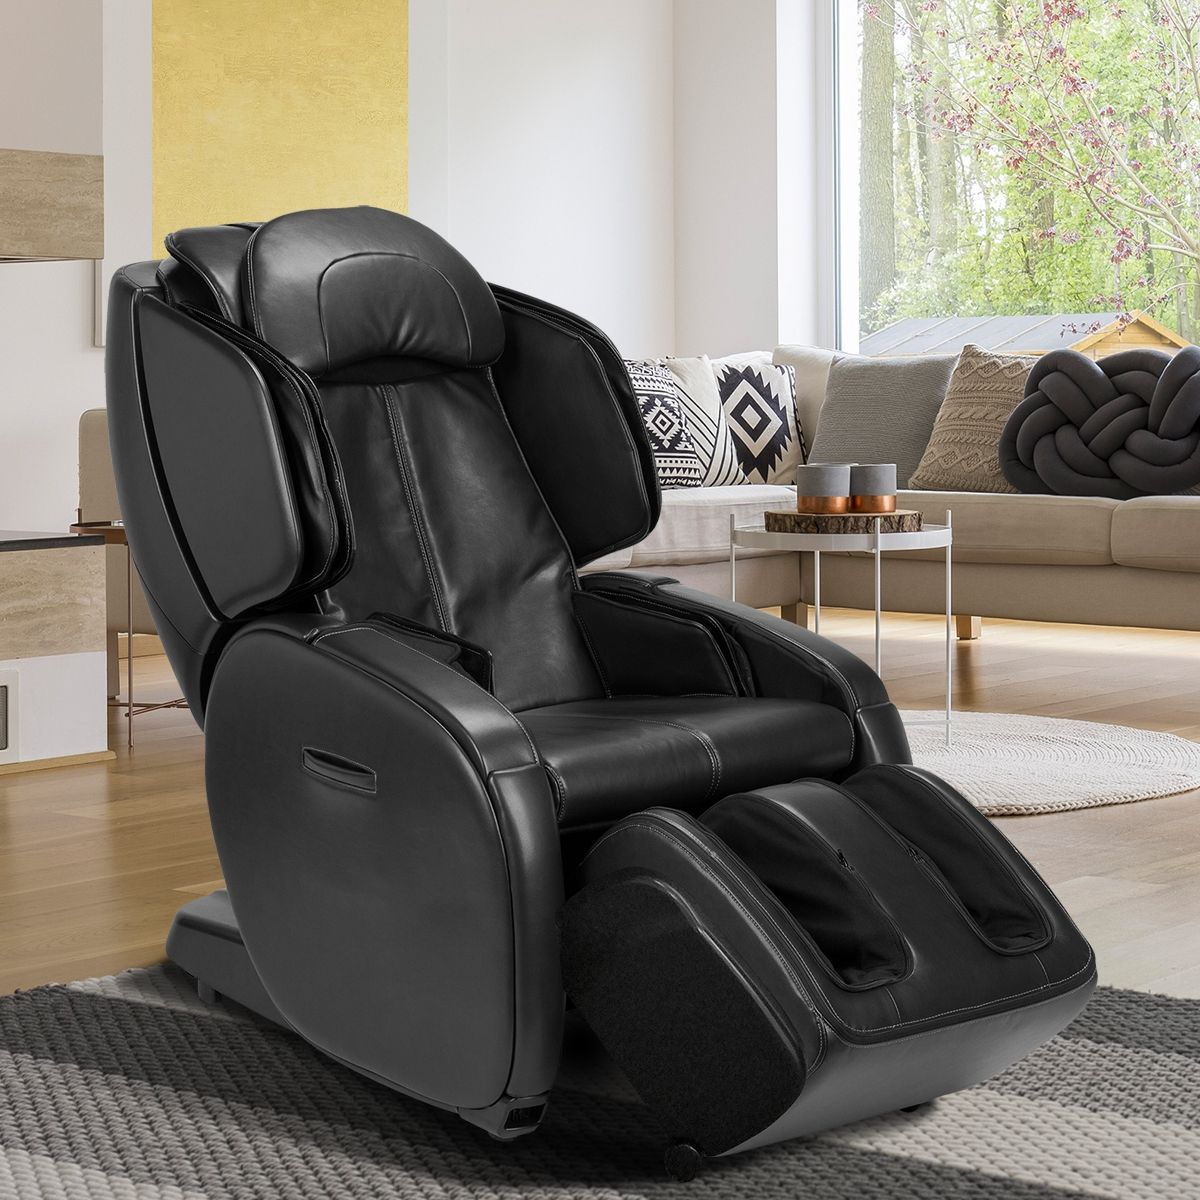 AcuTouch® 6.1 Massage Chair